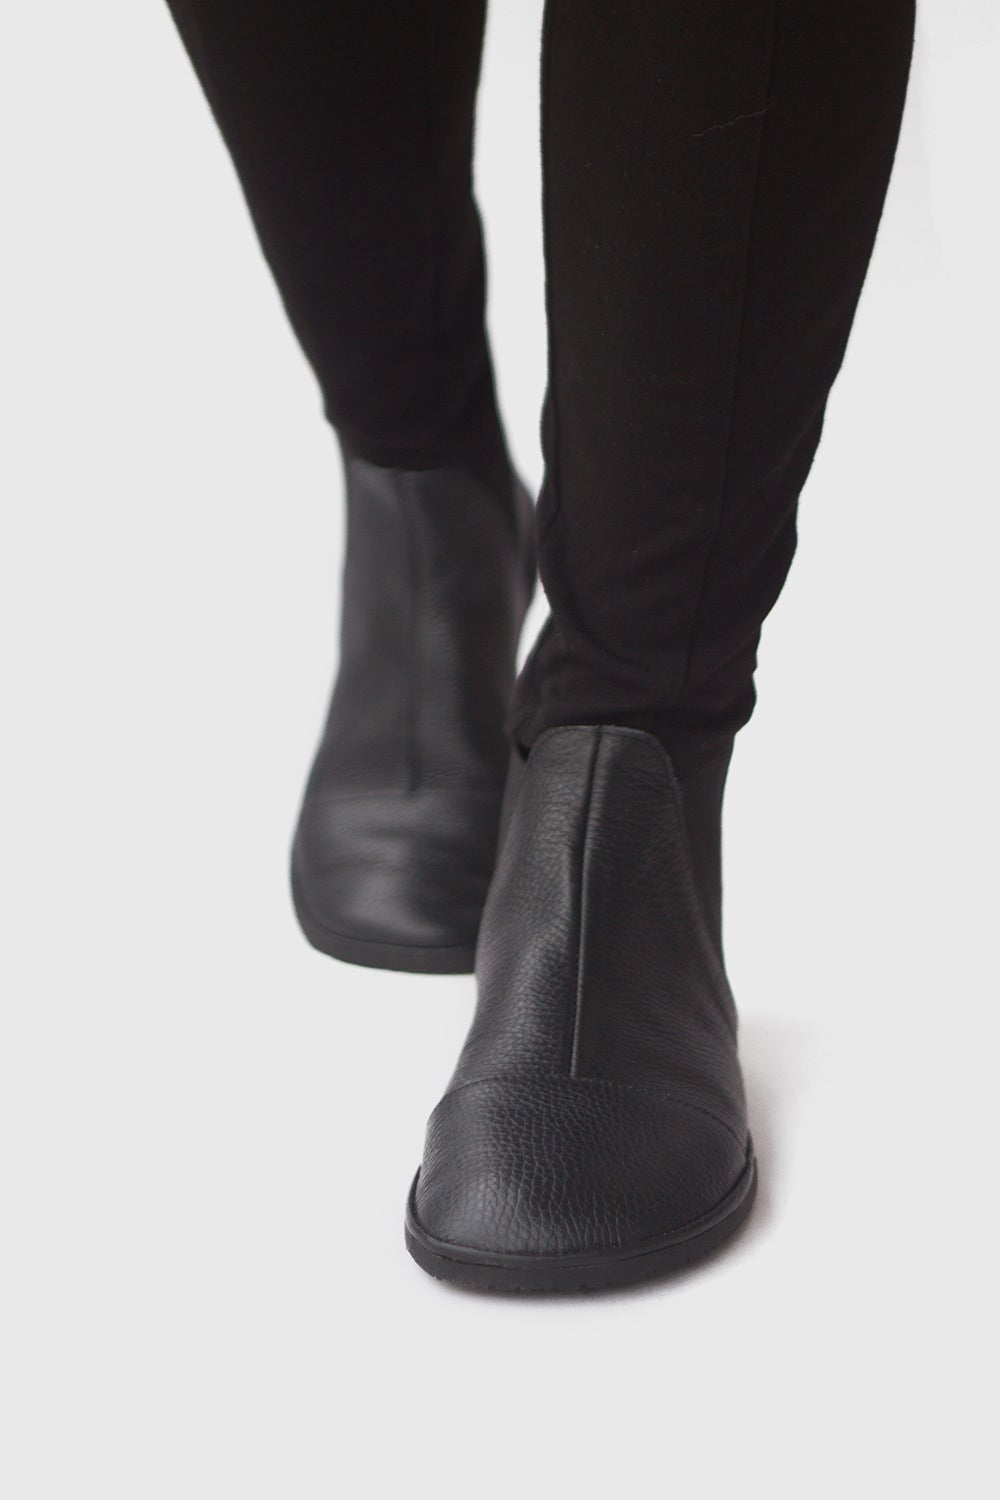 The Drifter Leather Handmade Shoes Chelsea Boots In